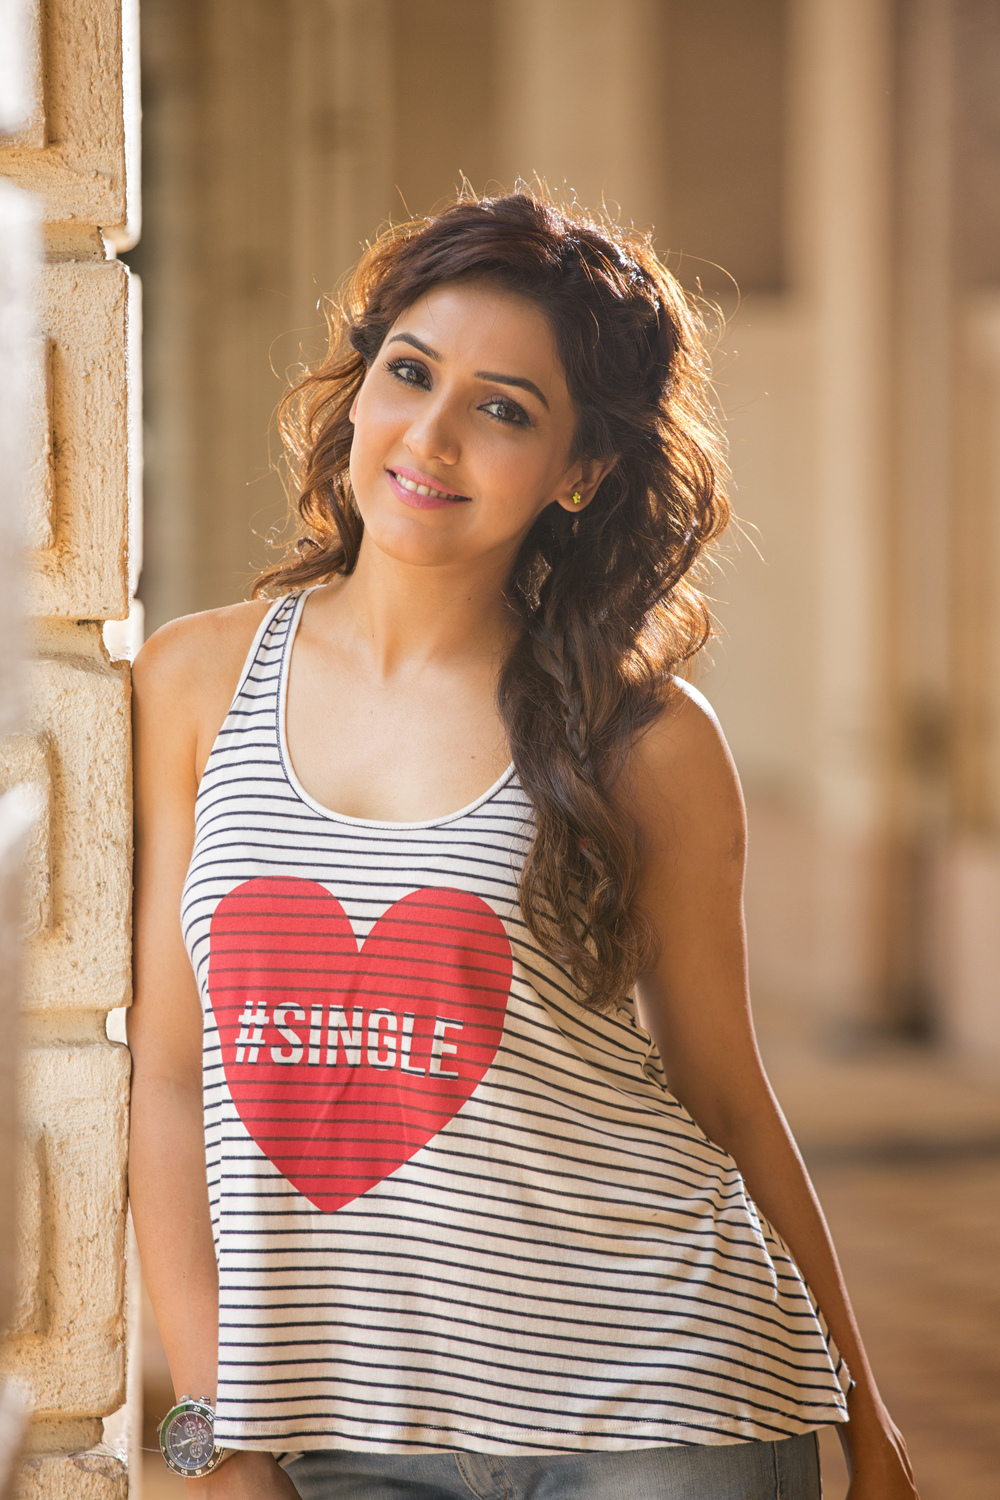 """Neeti Mohan   Neeti Mohan is an Indian popular singer. She was one of the winners of the Channel V show Pop-stars and as such, became a member of the Indian pop group Aasma with the other winners of the show, thus beginning her career in playback singing.  In her career, she sang some of the biggest Chartbusters like """"Ishq Wala Love"""" from the film Student of the Year, """"Tune Maari Entriyaan"""" from Gunday and """"Caller Tune"""" from Humshakls among many. """"Jiya Re"""" from the movie Jab Tak Hai Jaan remains her biggest critical and commercial success till date. She has done several shows in India and Abroad, and is a regular with A.R. Rahman concerts. She also received the R.D. Burman award for the """"New Music Sensation"""" for the songs """"Ishq Wala Love"""" from Student of the Year and """"Jiya Re"""" from Jab Tak Hai Jaan.  She was also nominated as the Best Female Playback Singer in Filmfare Awards, 2013 for the song """"Jiya Re"""" from the film Jab Tak Hai Jaan.  Some of her other hits include """"Saadi Galli Aaja"""" from Nautanki Saala, """"Kashmir Main Tu Kanyakumari"""" from Chennai Express and """"Tune Maari Entriyaan"""" from the movie Gunday."""